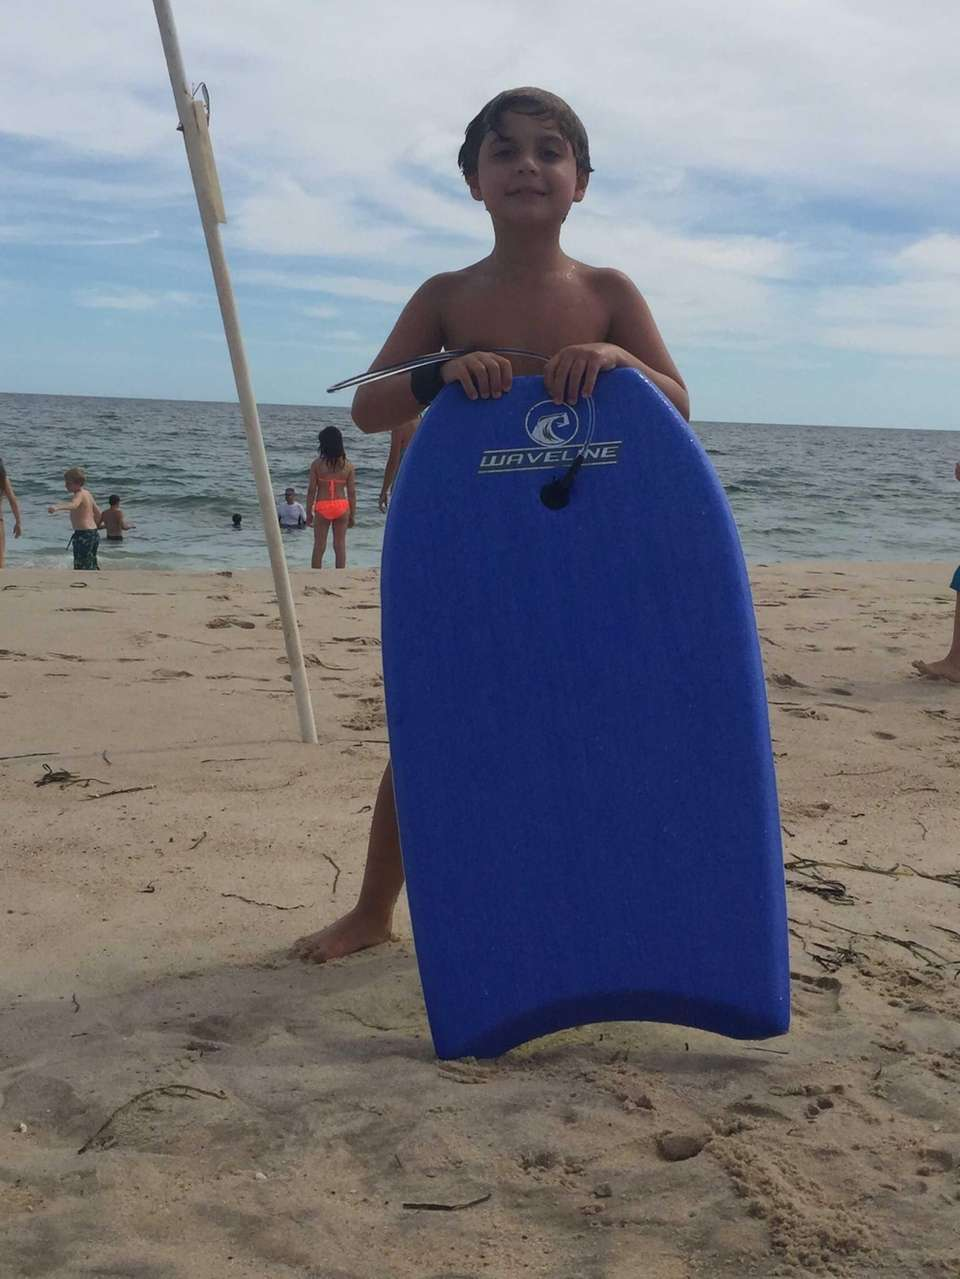 Joseph Ruggiero Boogie boarding at coopers beach Southampton